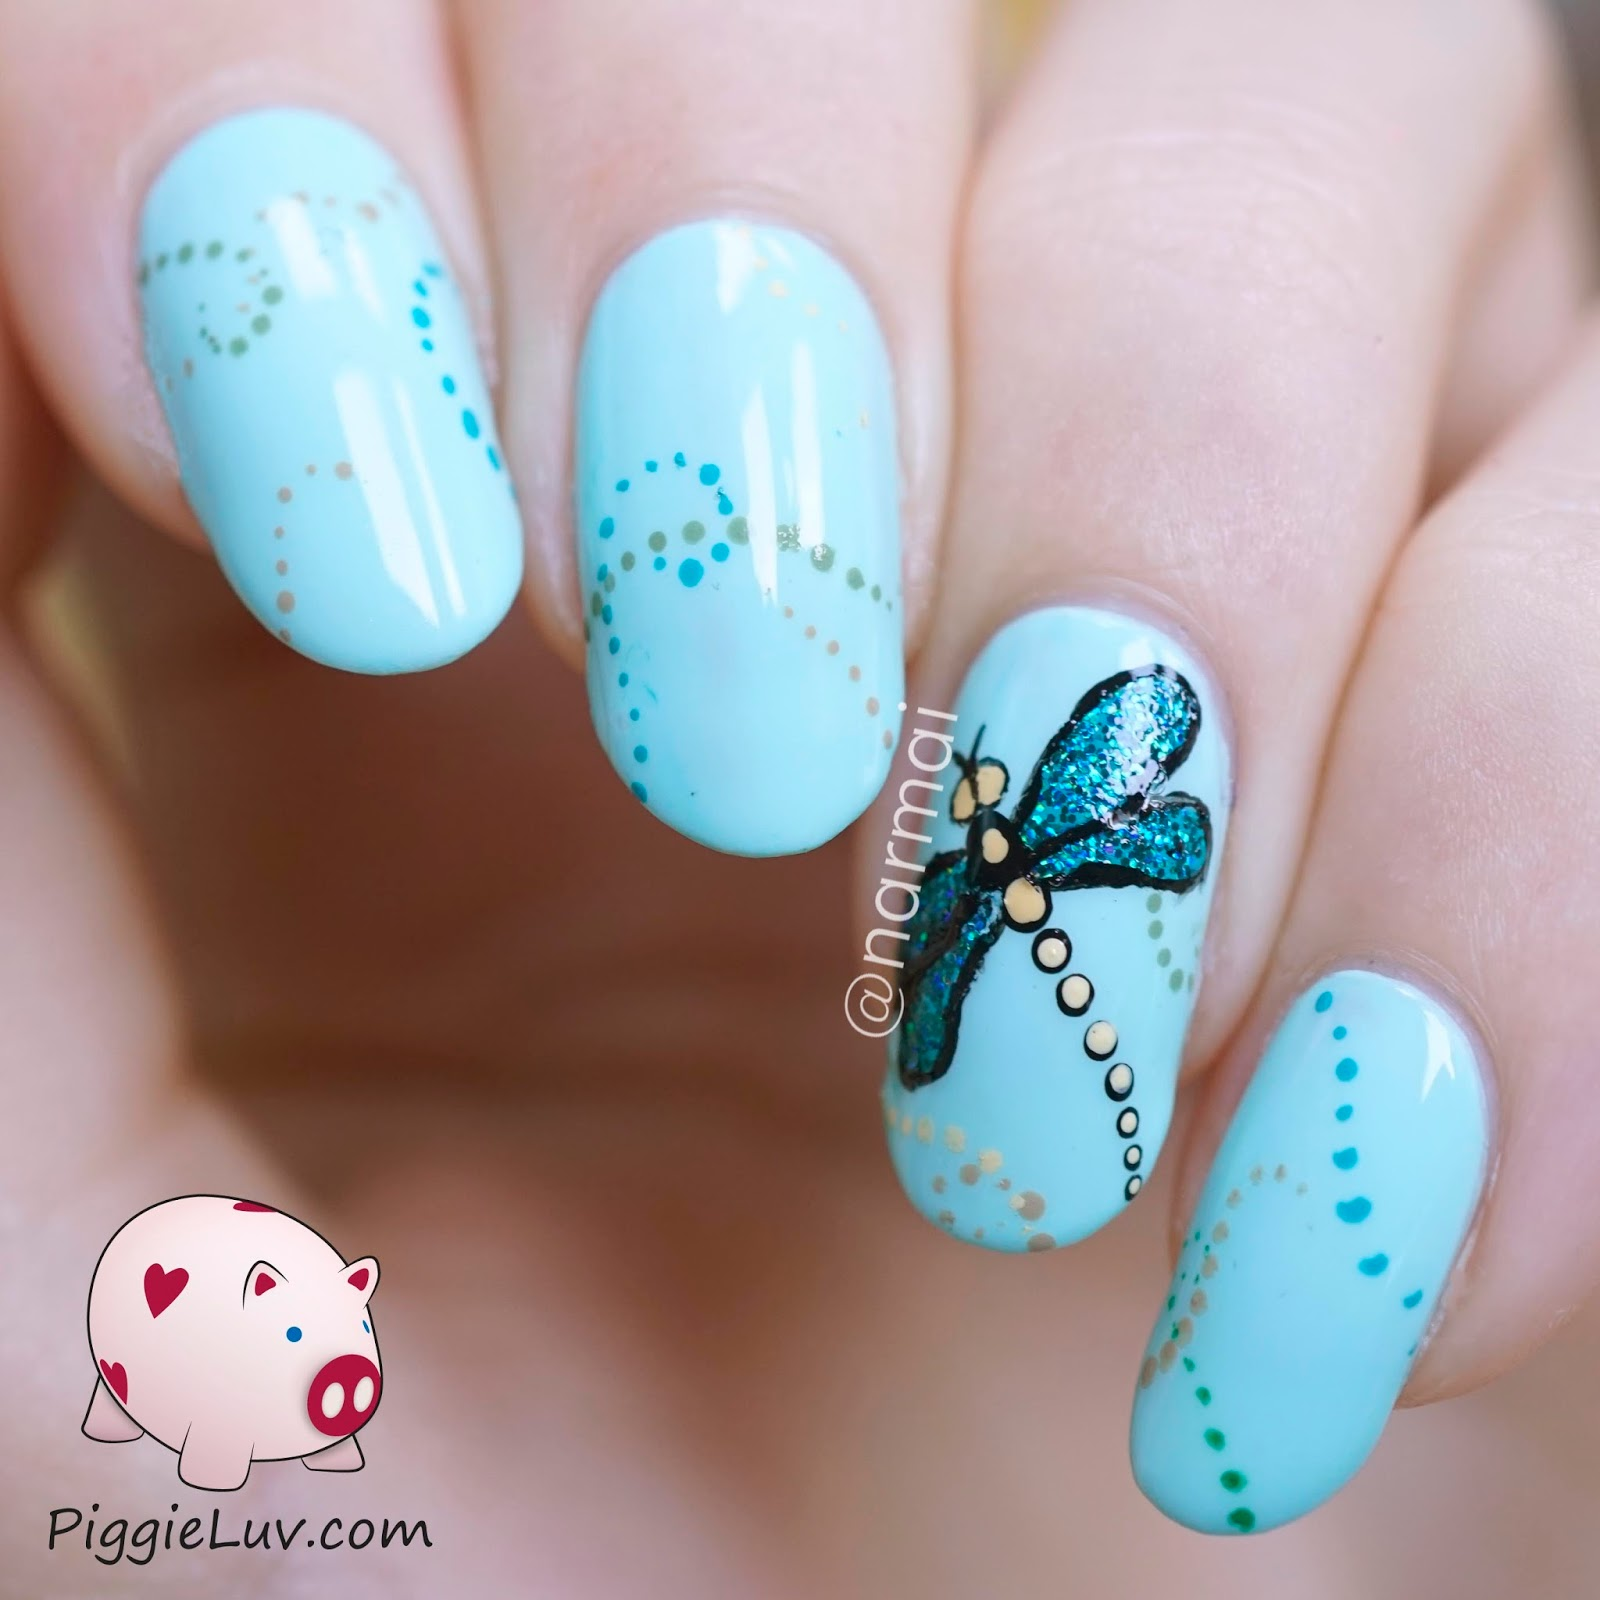 Piggieluv glitter dragonfly nail art glitter dragonfly nail art prinsesfo Image collections